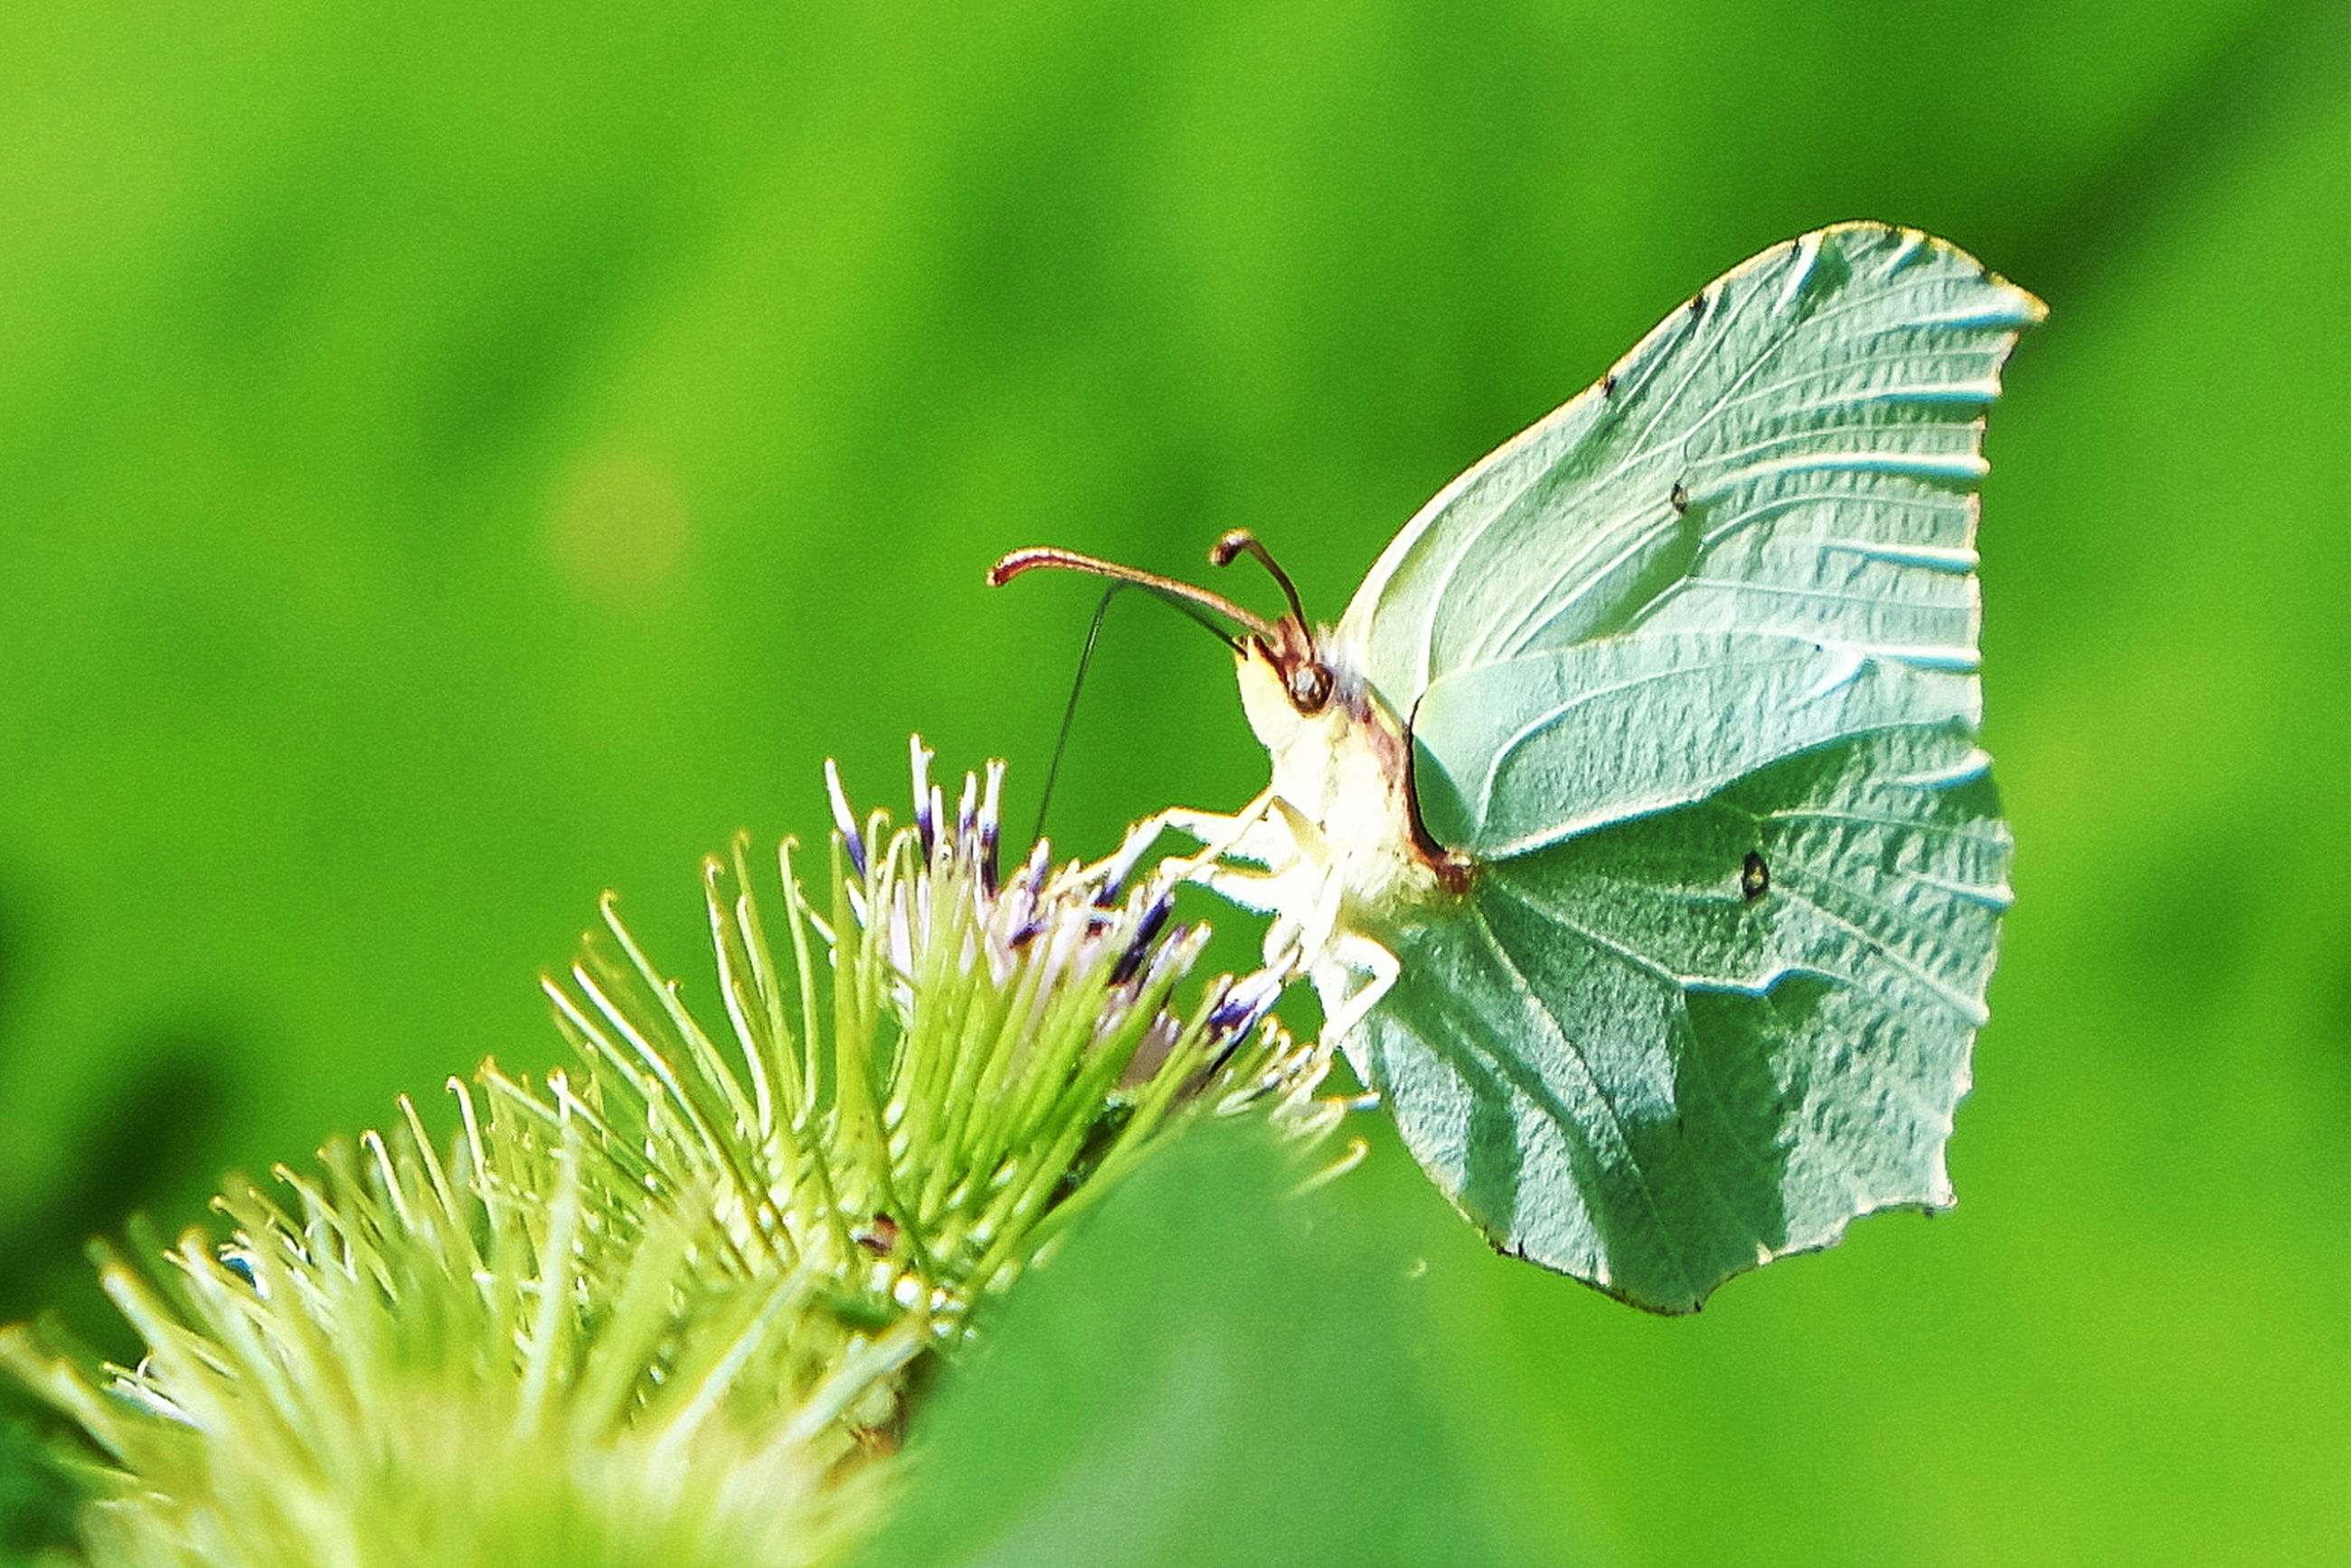 green color, leaf, plant part, plant, invertebrate, animal, one animal, animal themes, close-up, animal wildlife, animals in the wild, growth, insect, beauty in nature, nature, focus on foreground, no people, day, selective focus, vulnerability, animal wing, leaves, butterfly - insect